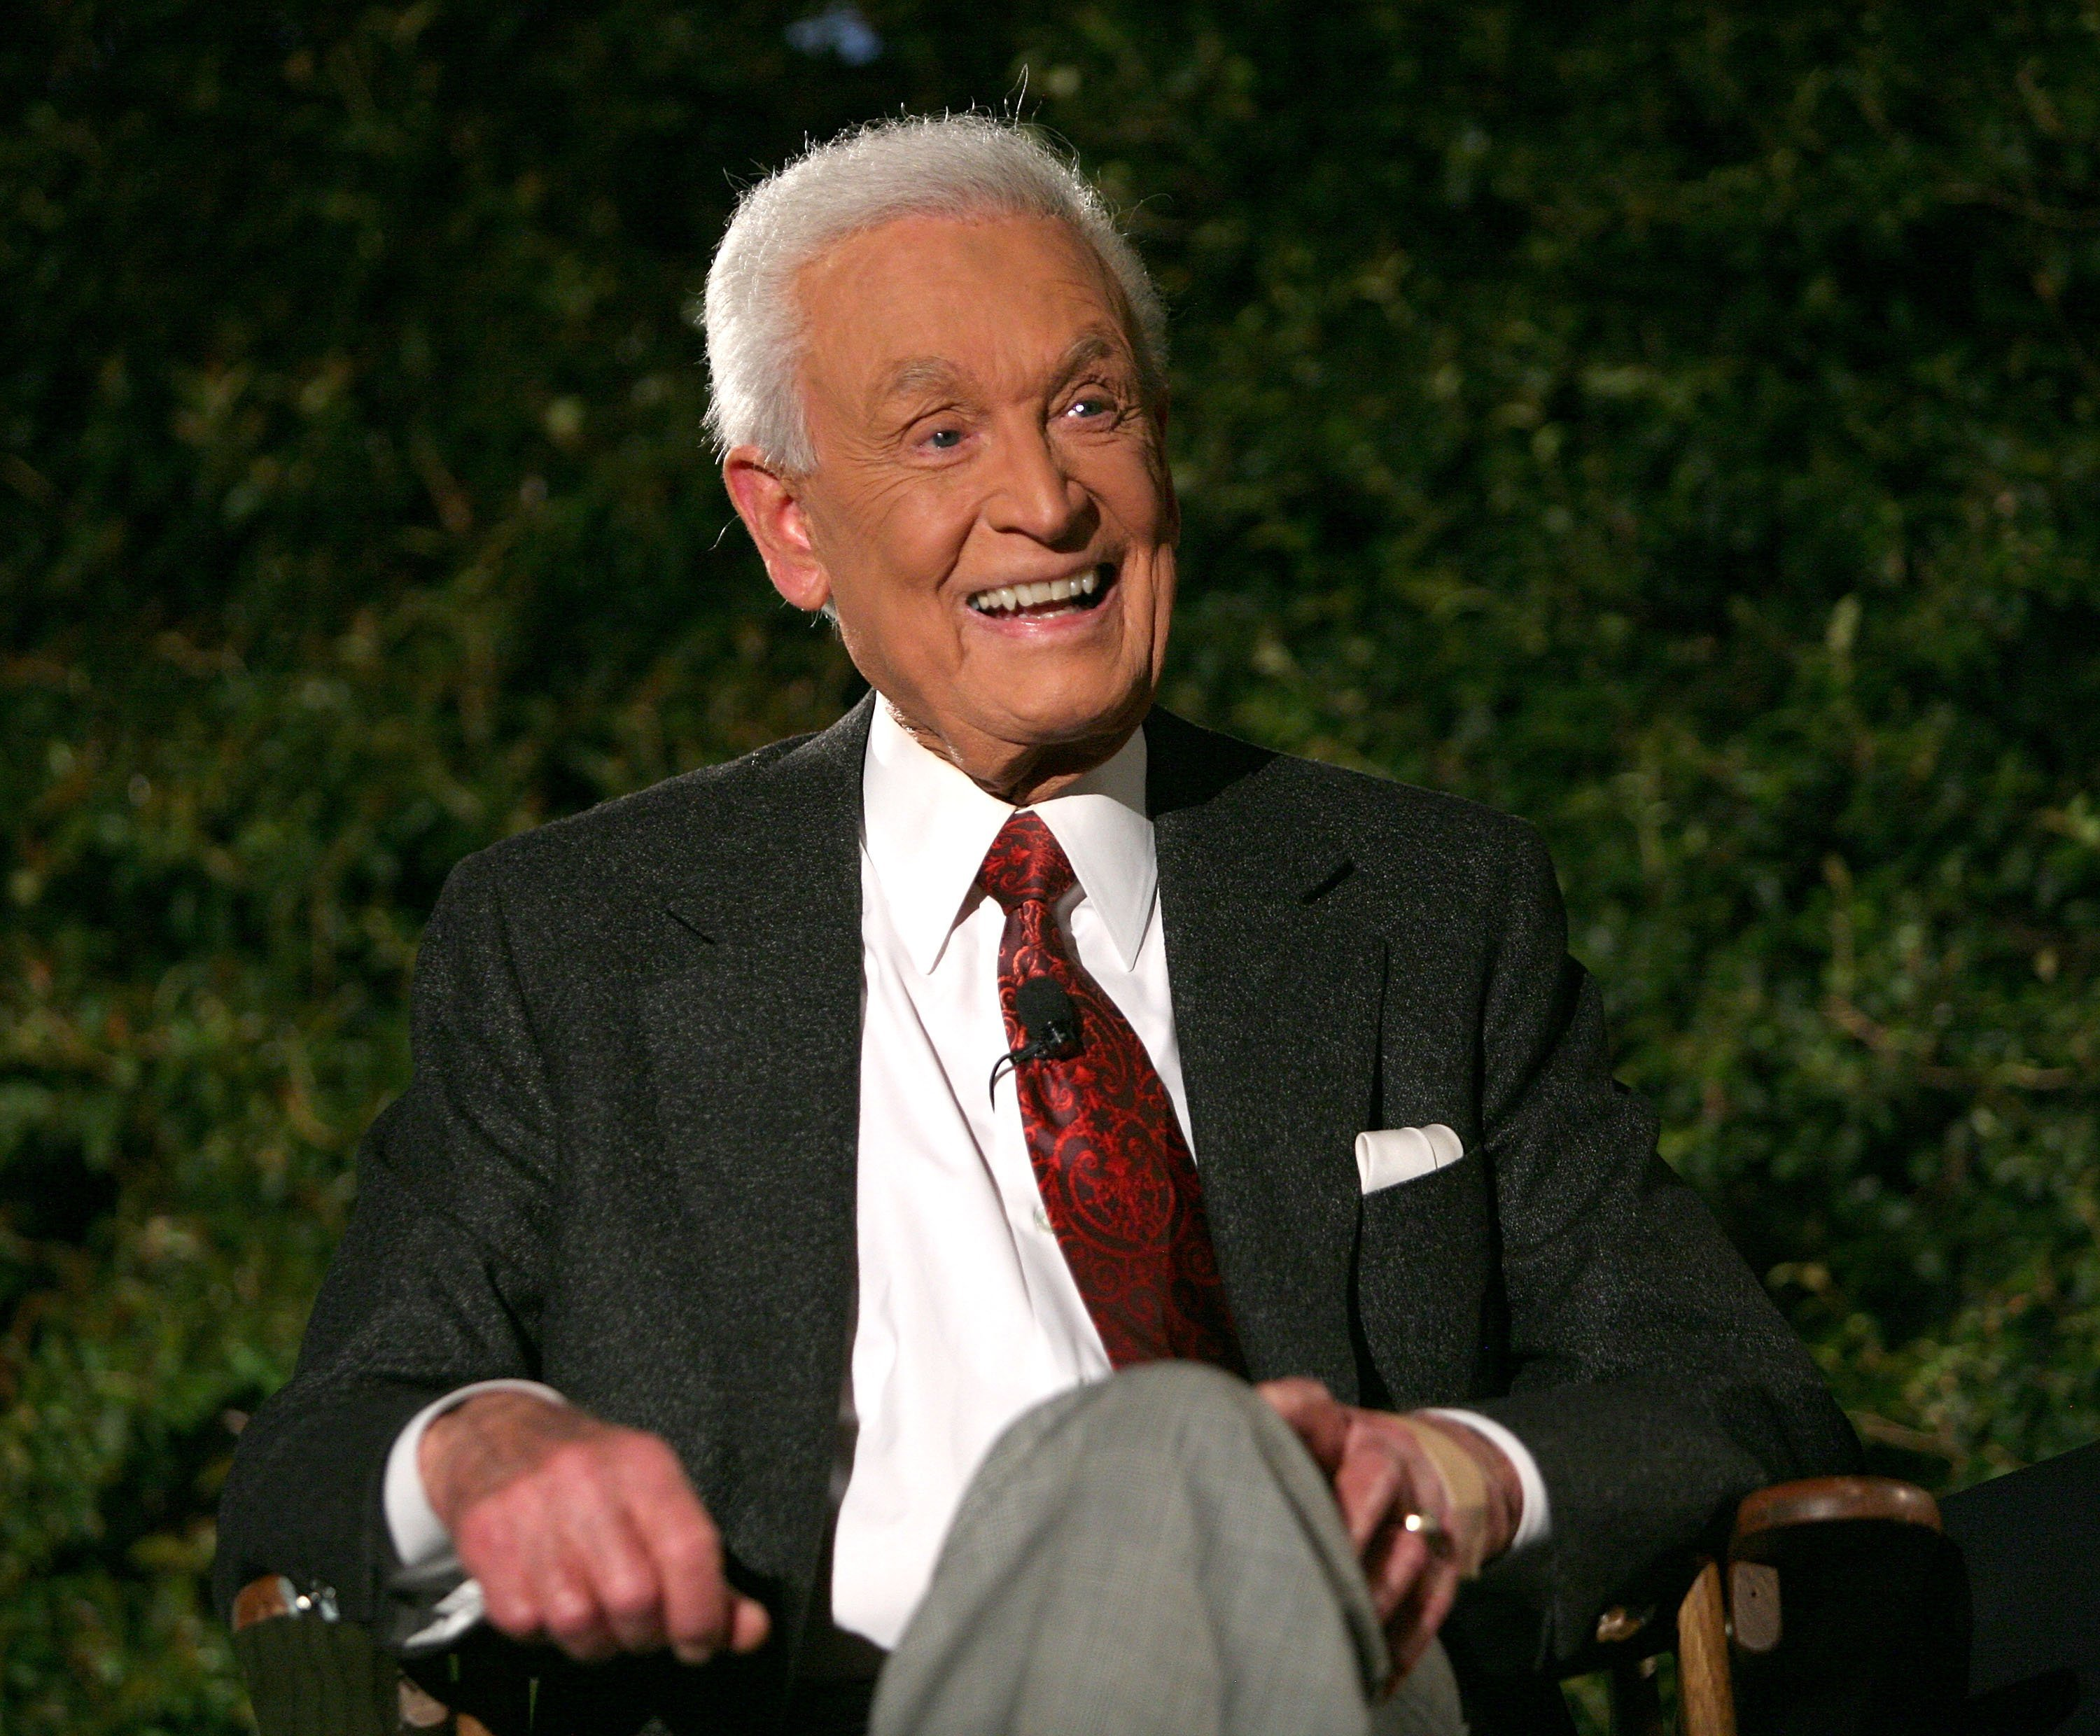 Bob Barker on May 7, 2007 in Los Angeles, California | Photo: Getty Images